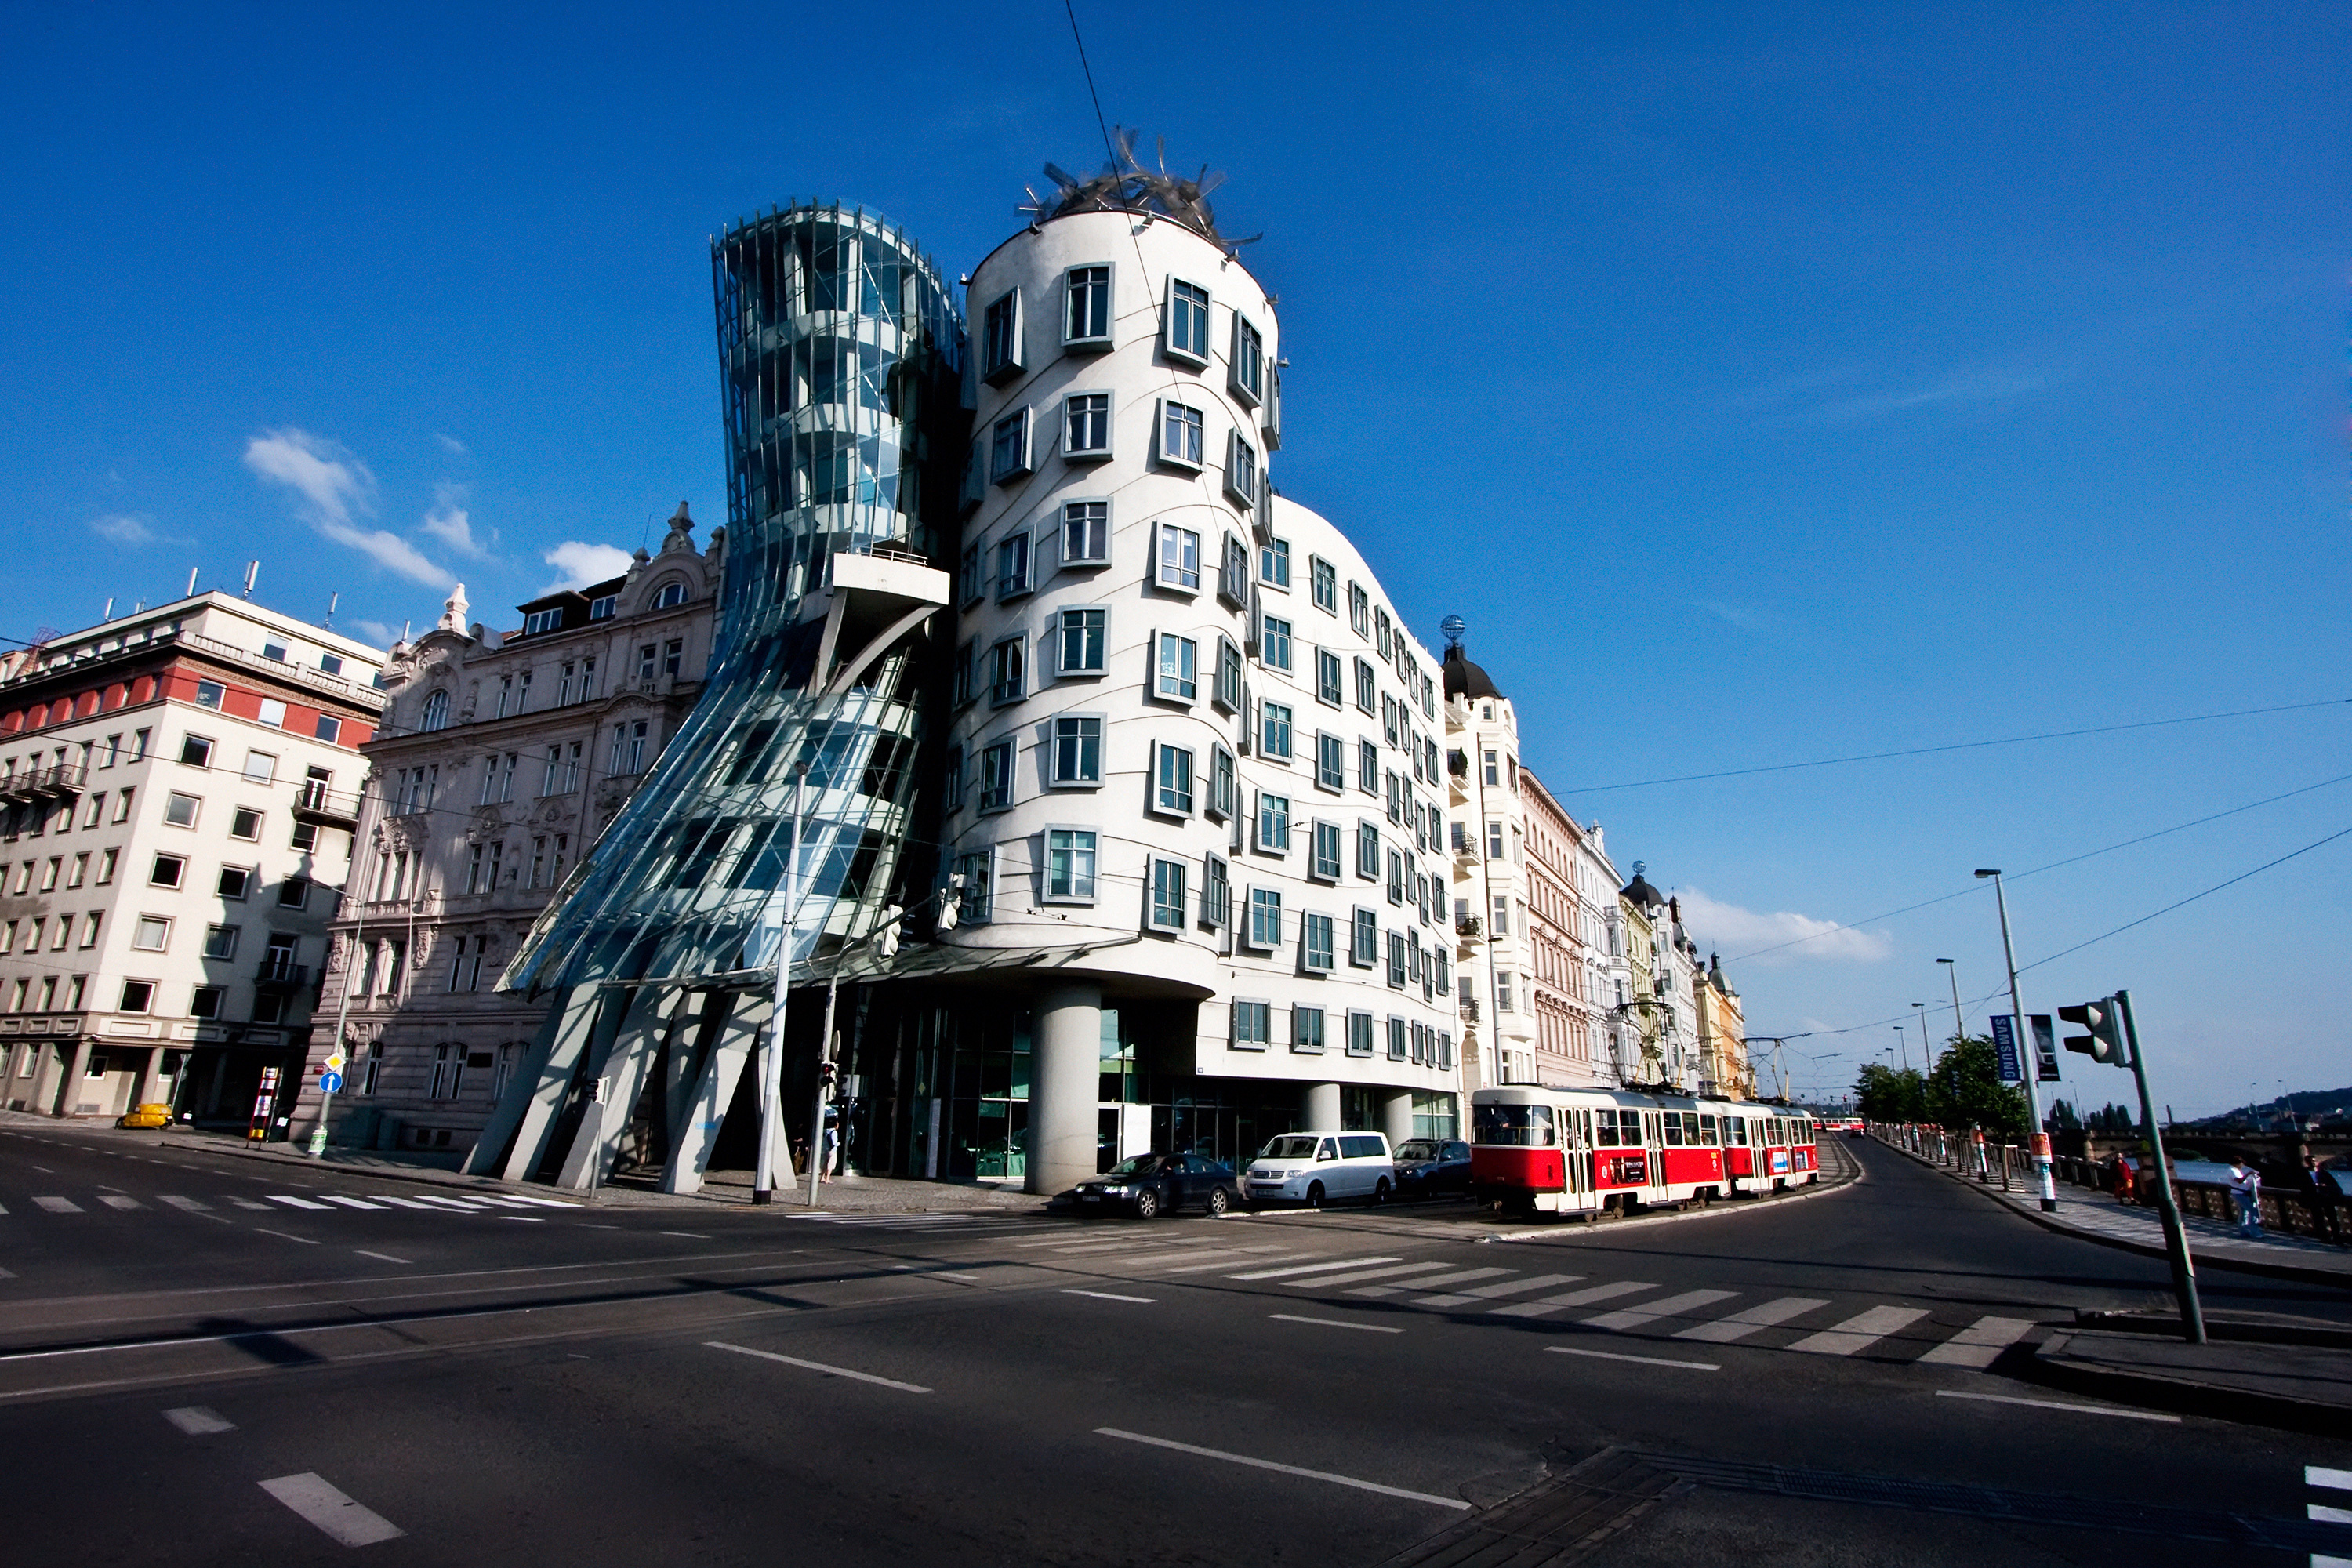 Dancing House, Praga, República Checa (1994-1996).